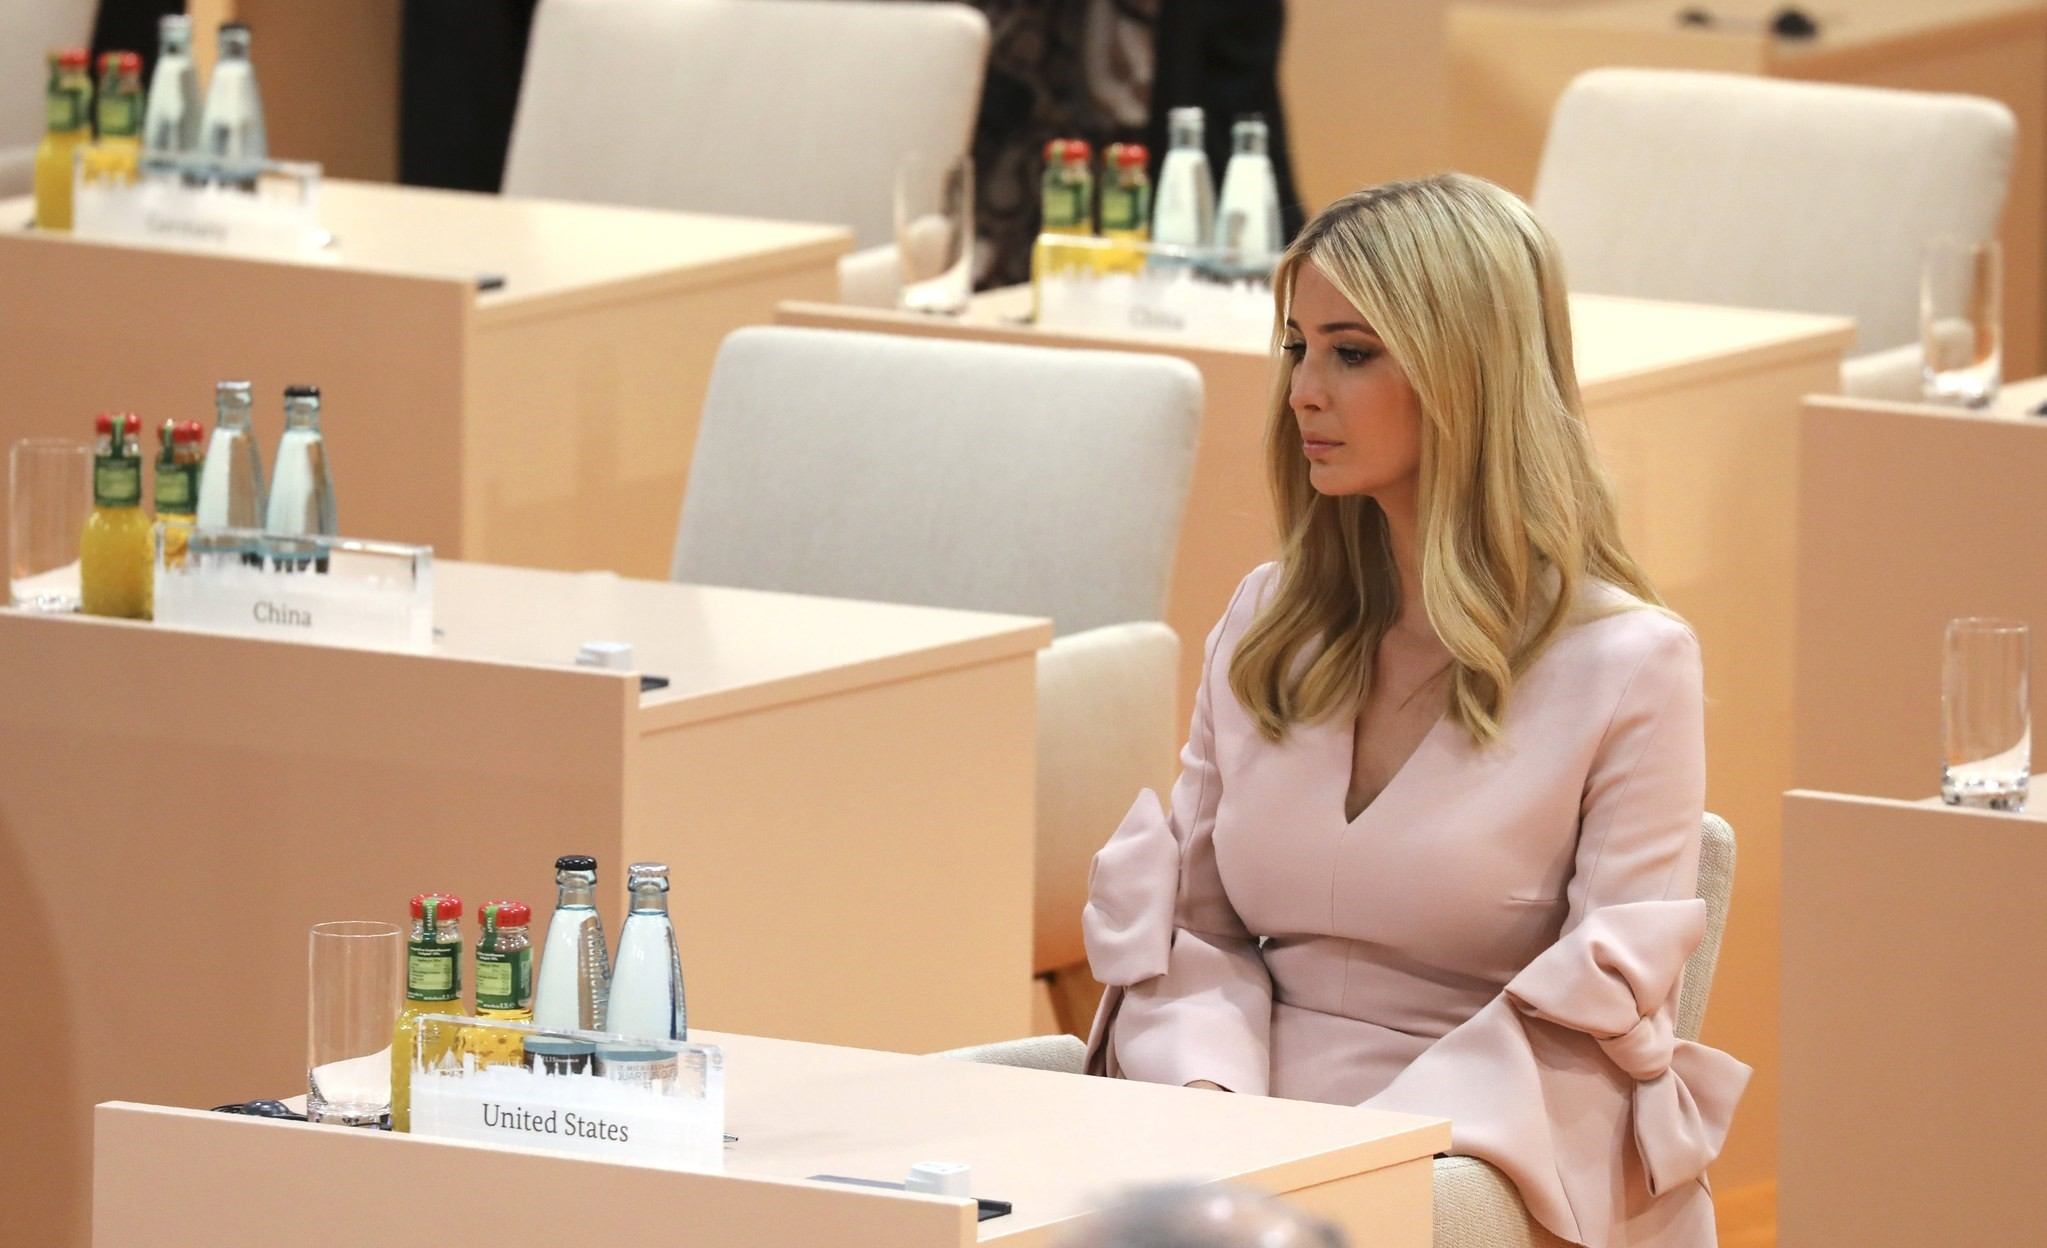 Ivanka Trump, daughter and personal adviser of US President Donald J. Trump, sits at her seat at the beginning of the third working session on the second day of the G20 summit in Hamburg, Germany, 08 July 2017. (EPA Photo)